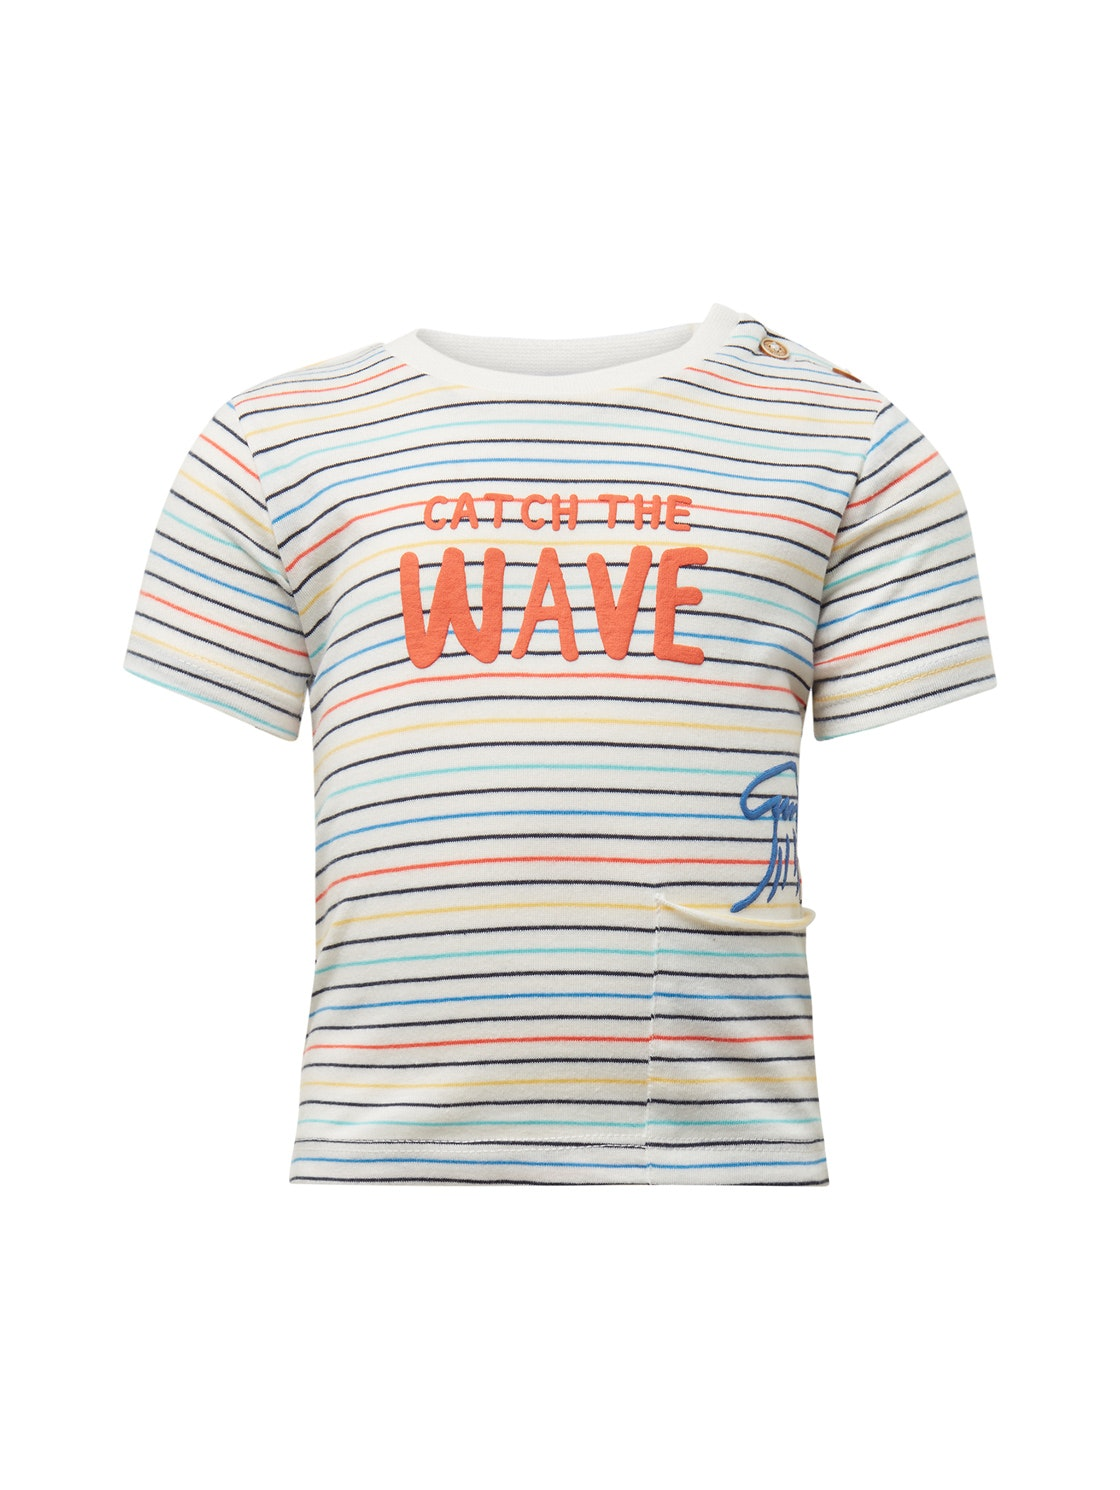 T-shirt patterned, multicolour-multicolored